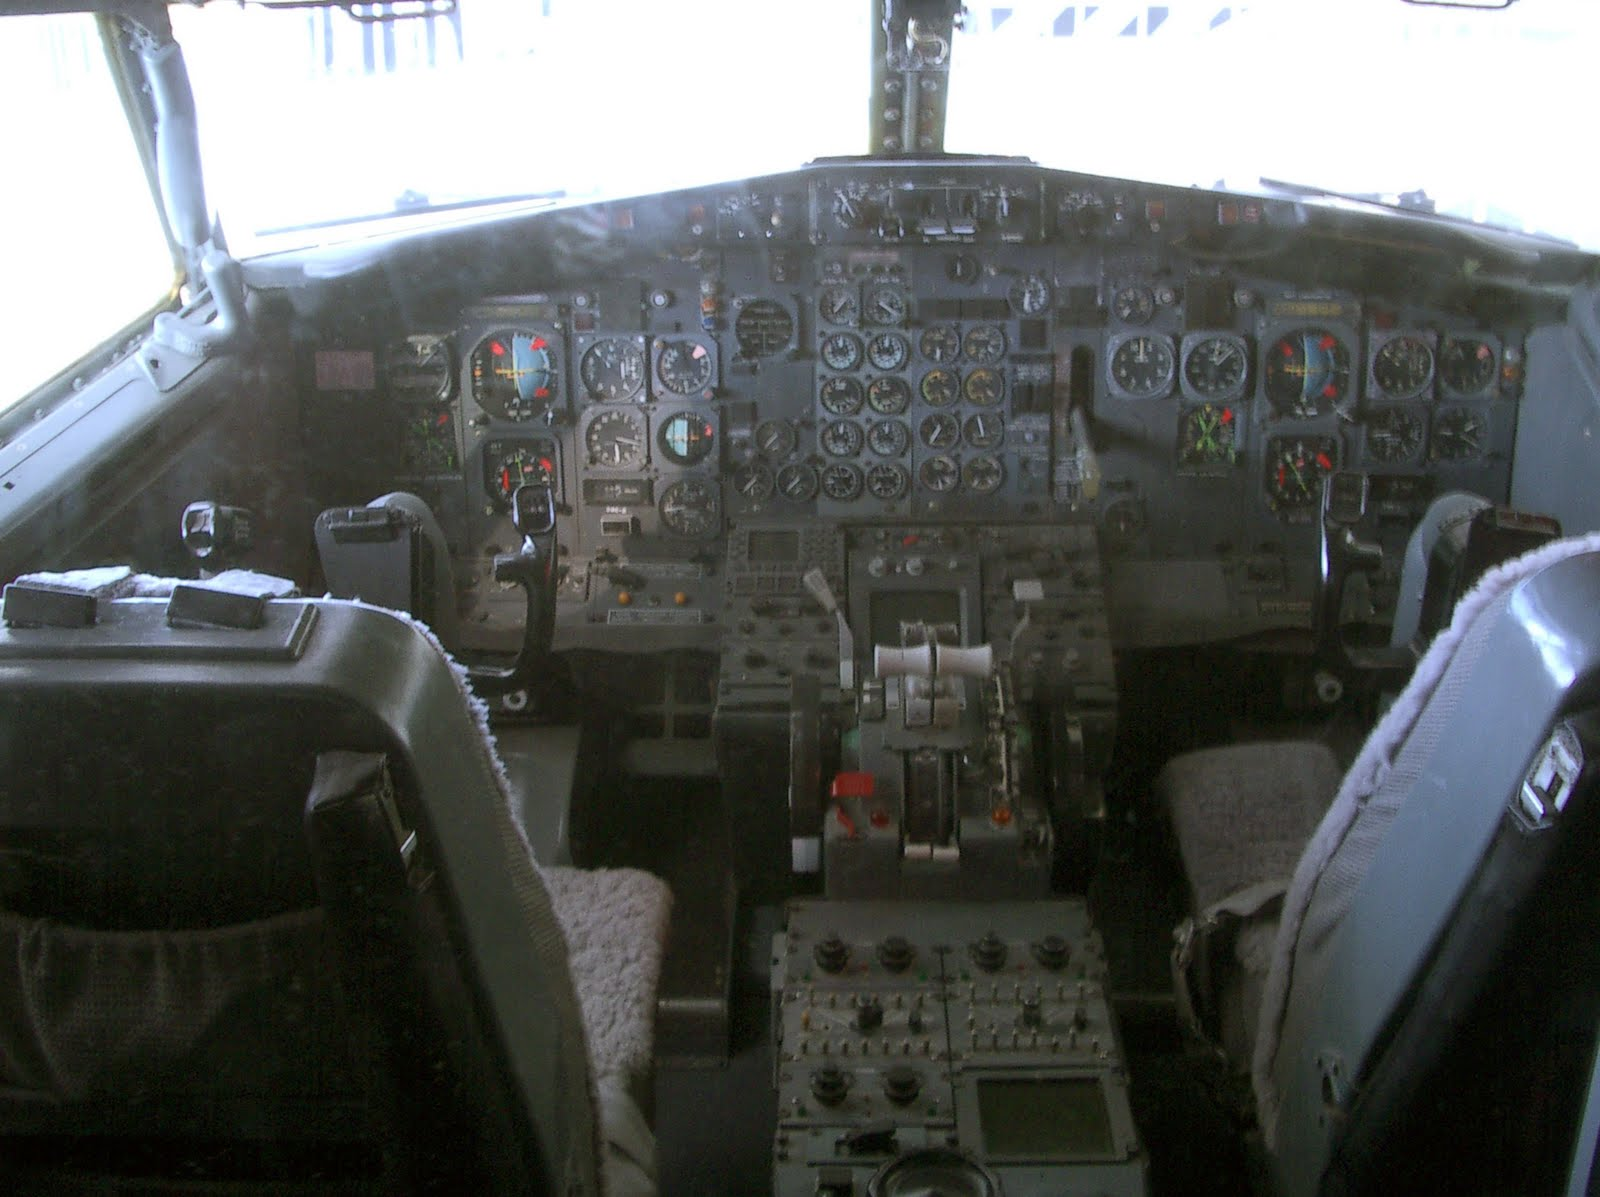 Free Download Cool Wallpapers Boeing 737 Cockpit Pictures